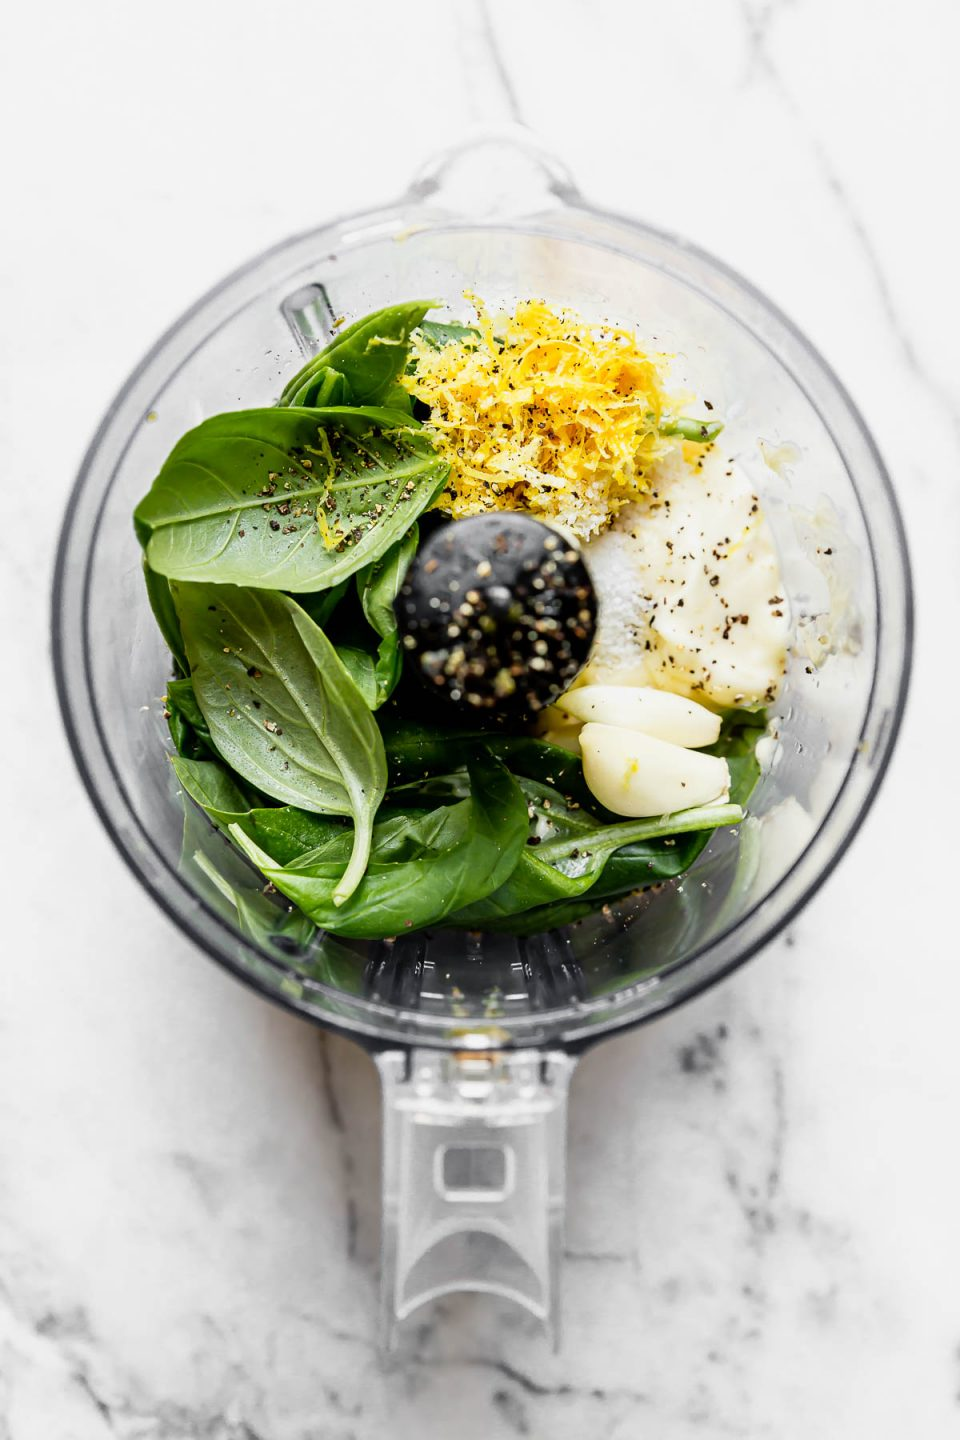 Lemon basil aioli ingredients (basil, mayonnaise, garlic cloves, & lemon zest) placed in the bowl of a small food processor, atop a white marble surface.